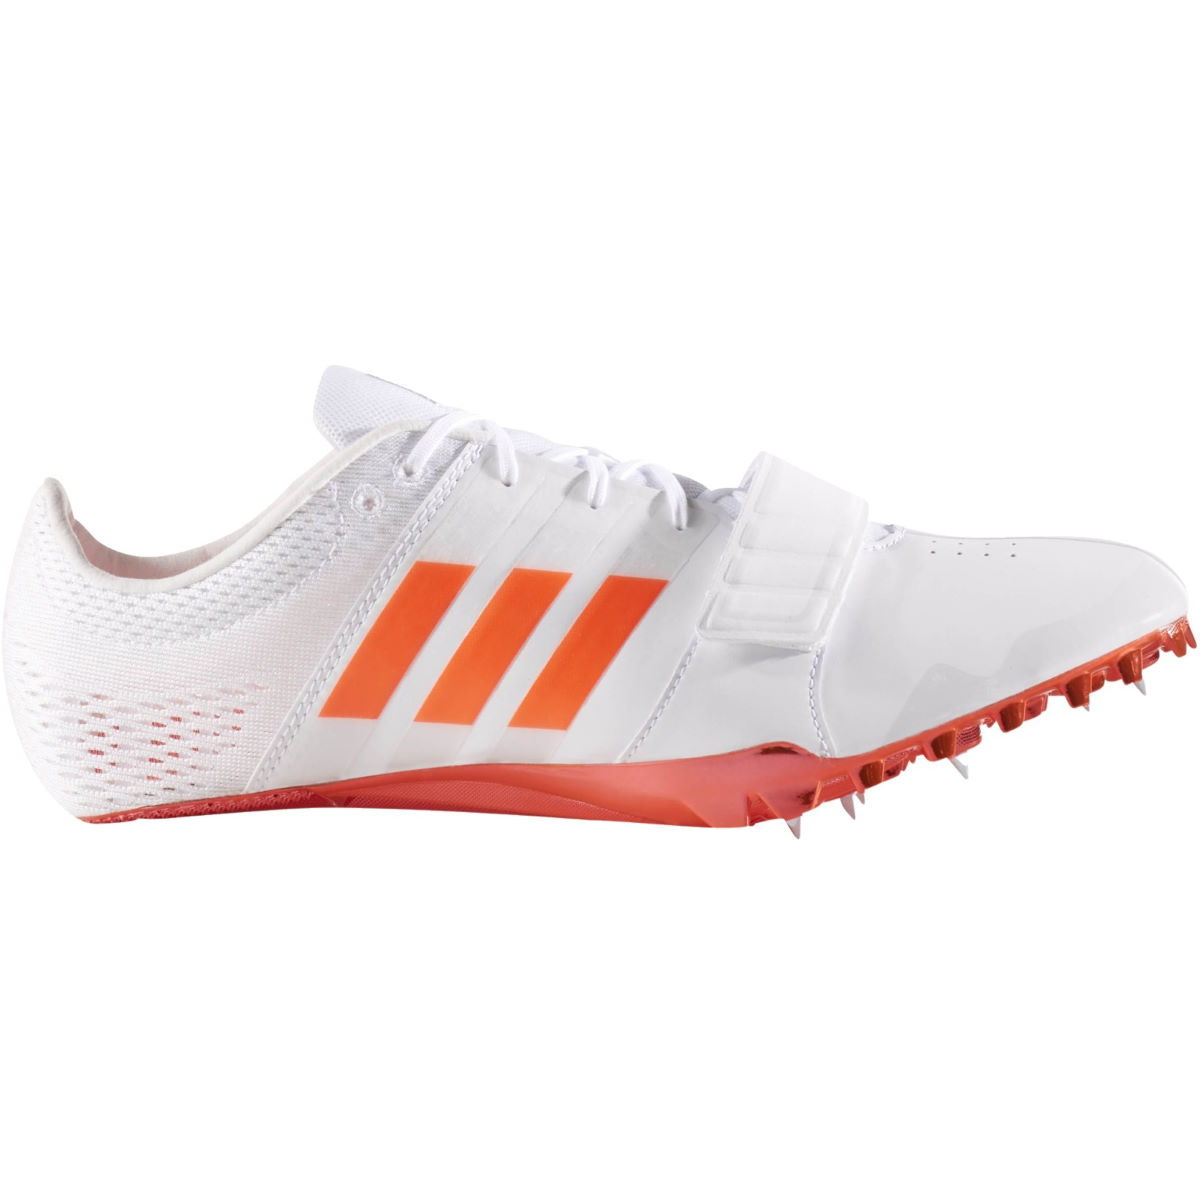 Adidas Adizero Accelerator Shoes (AW16)   Spiked Running Shoes